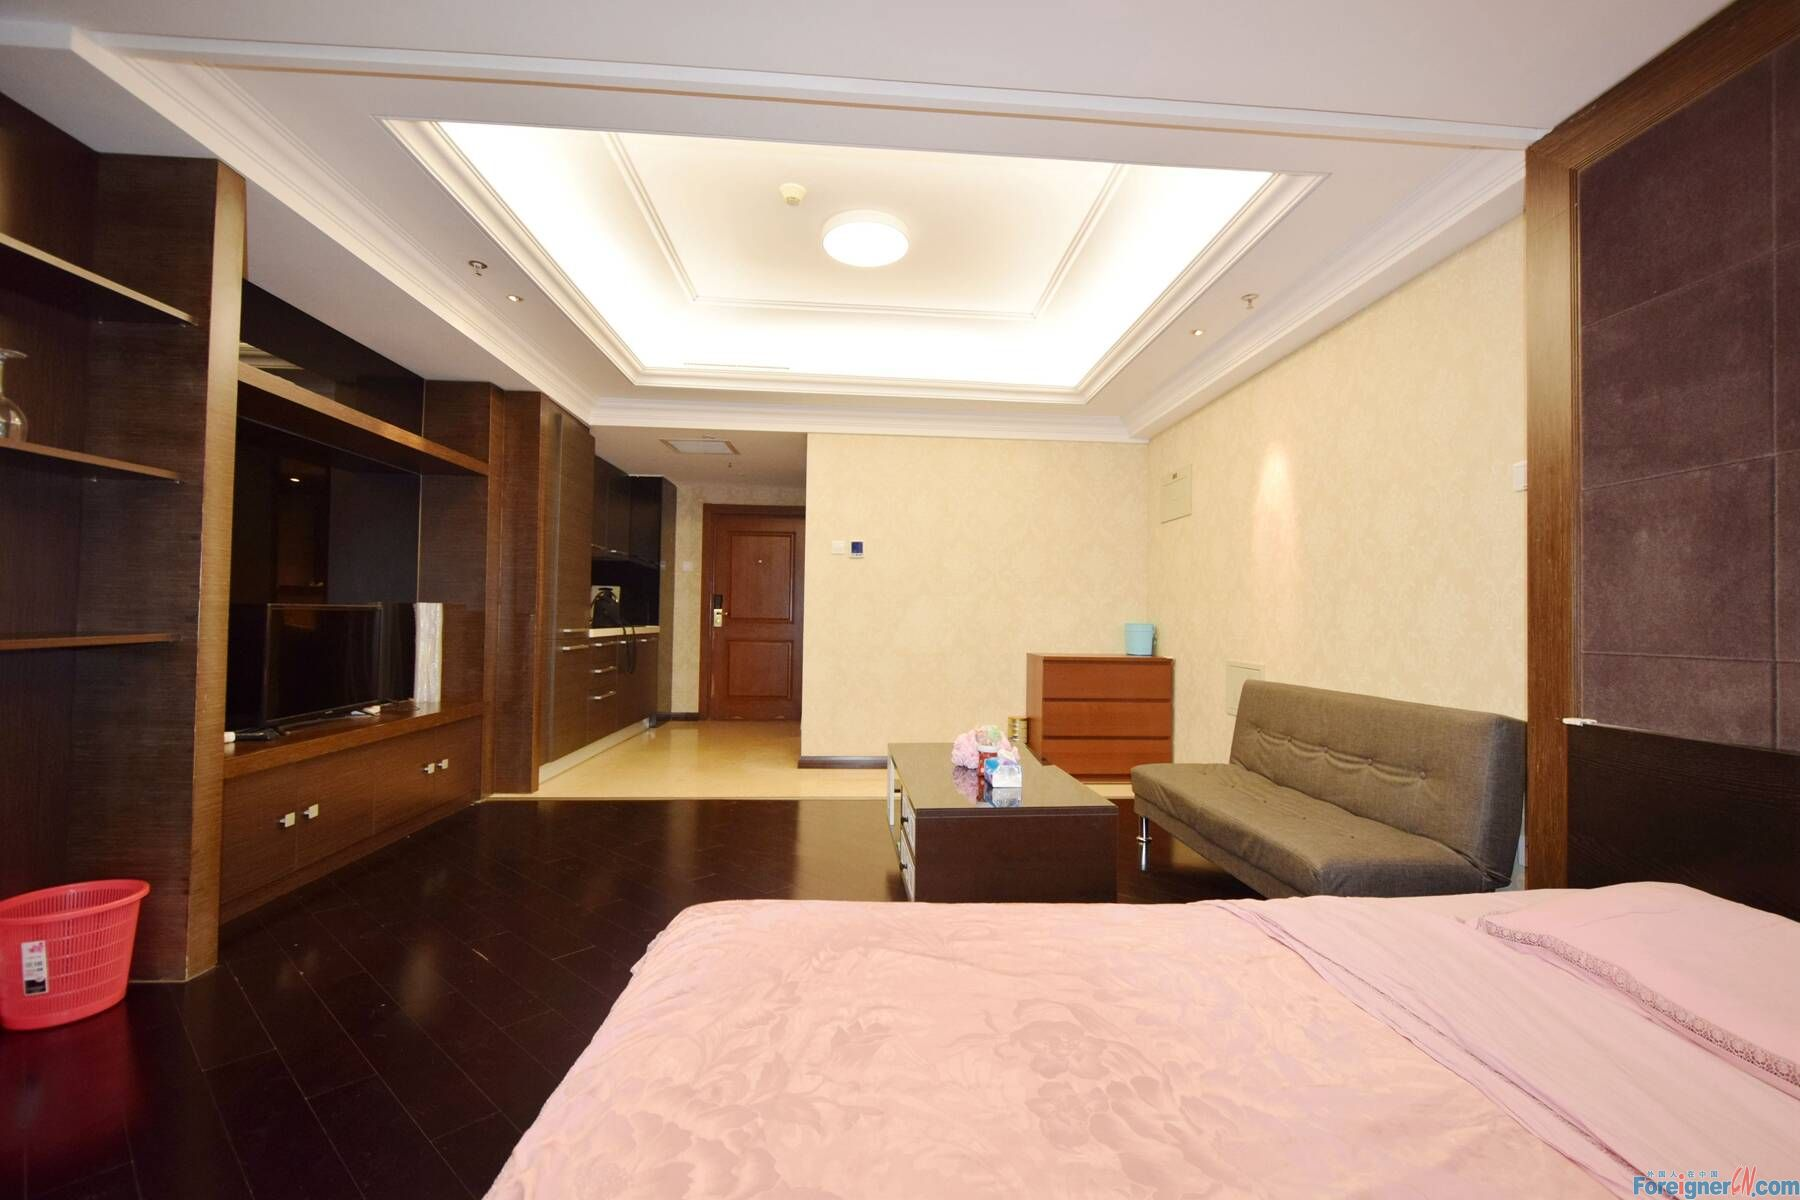 【No.8 in the East, Open Room RENTING】High Quality Simple Style Open Room. Any Time Can Be Leased. Price 7,500 Rmb per Month